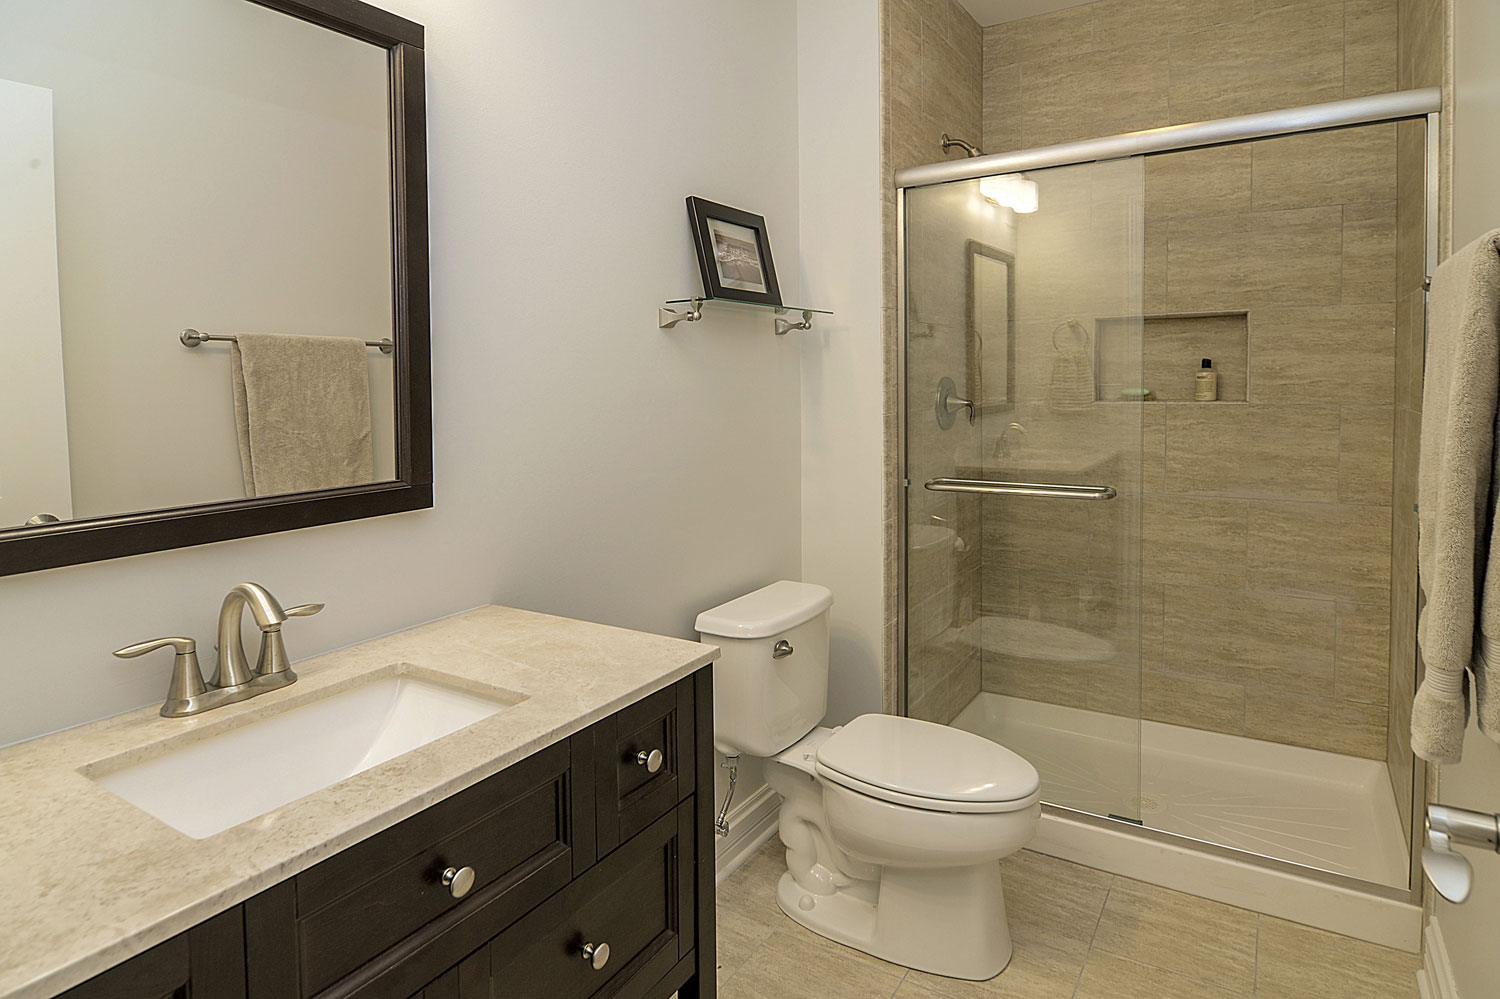 full only home bathroom for large of shower average designs remodel size square cost per ideas foot tiny in with walk small